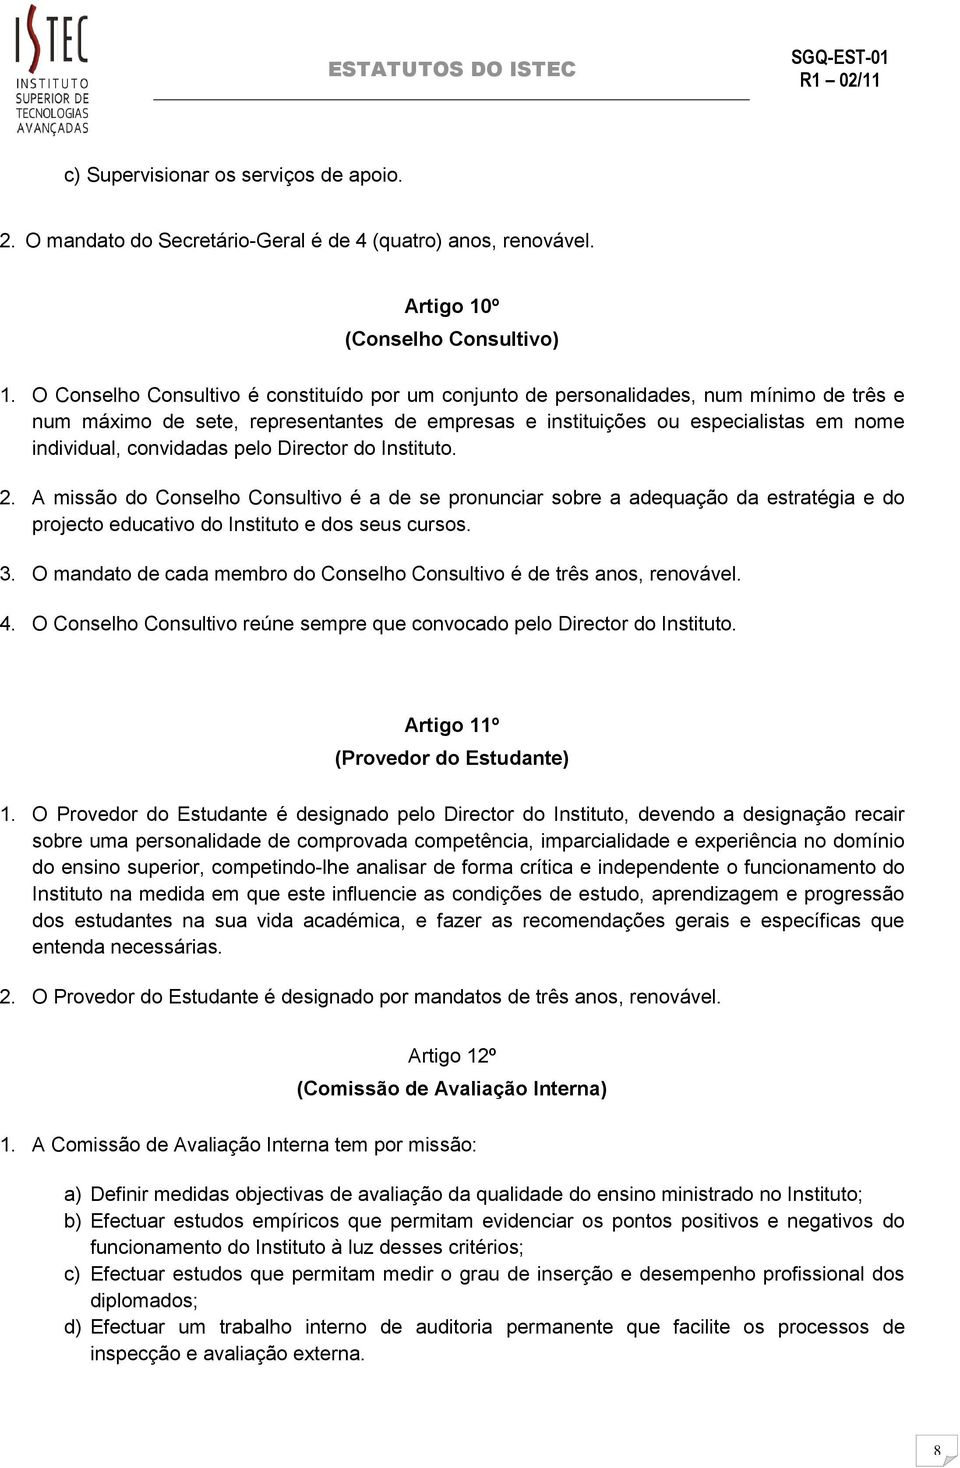 convidadas pelo Director do Instituto. 2. A missão do Conselho Consultivo é a de se pronunciar sobre a adequação da estratégia e do projecto educativo do Instituto e dos seus cursos. 3.